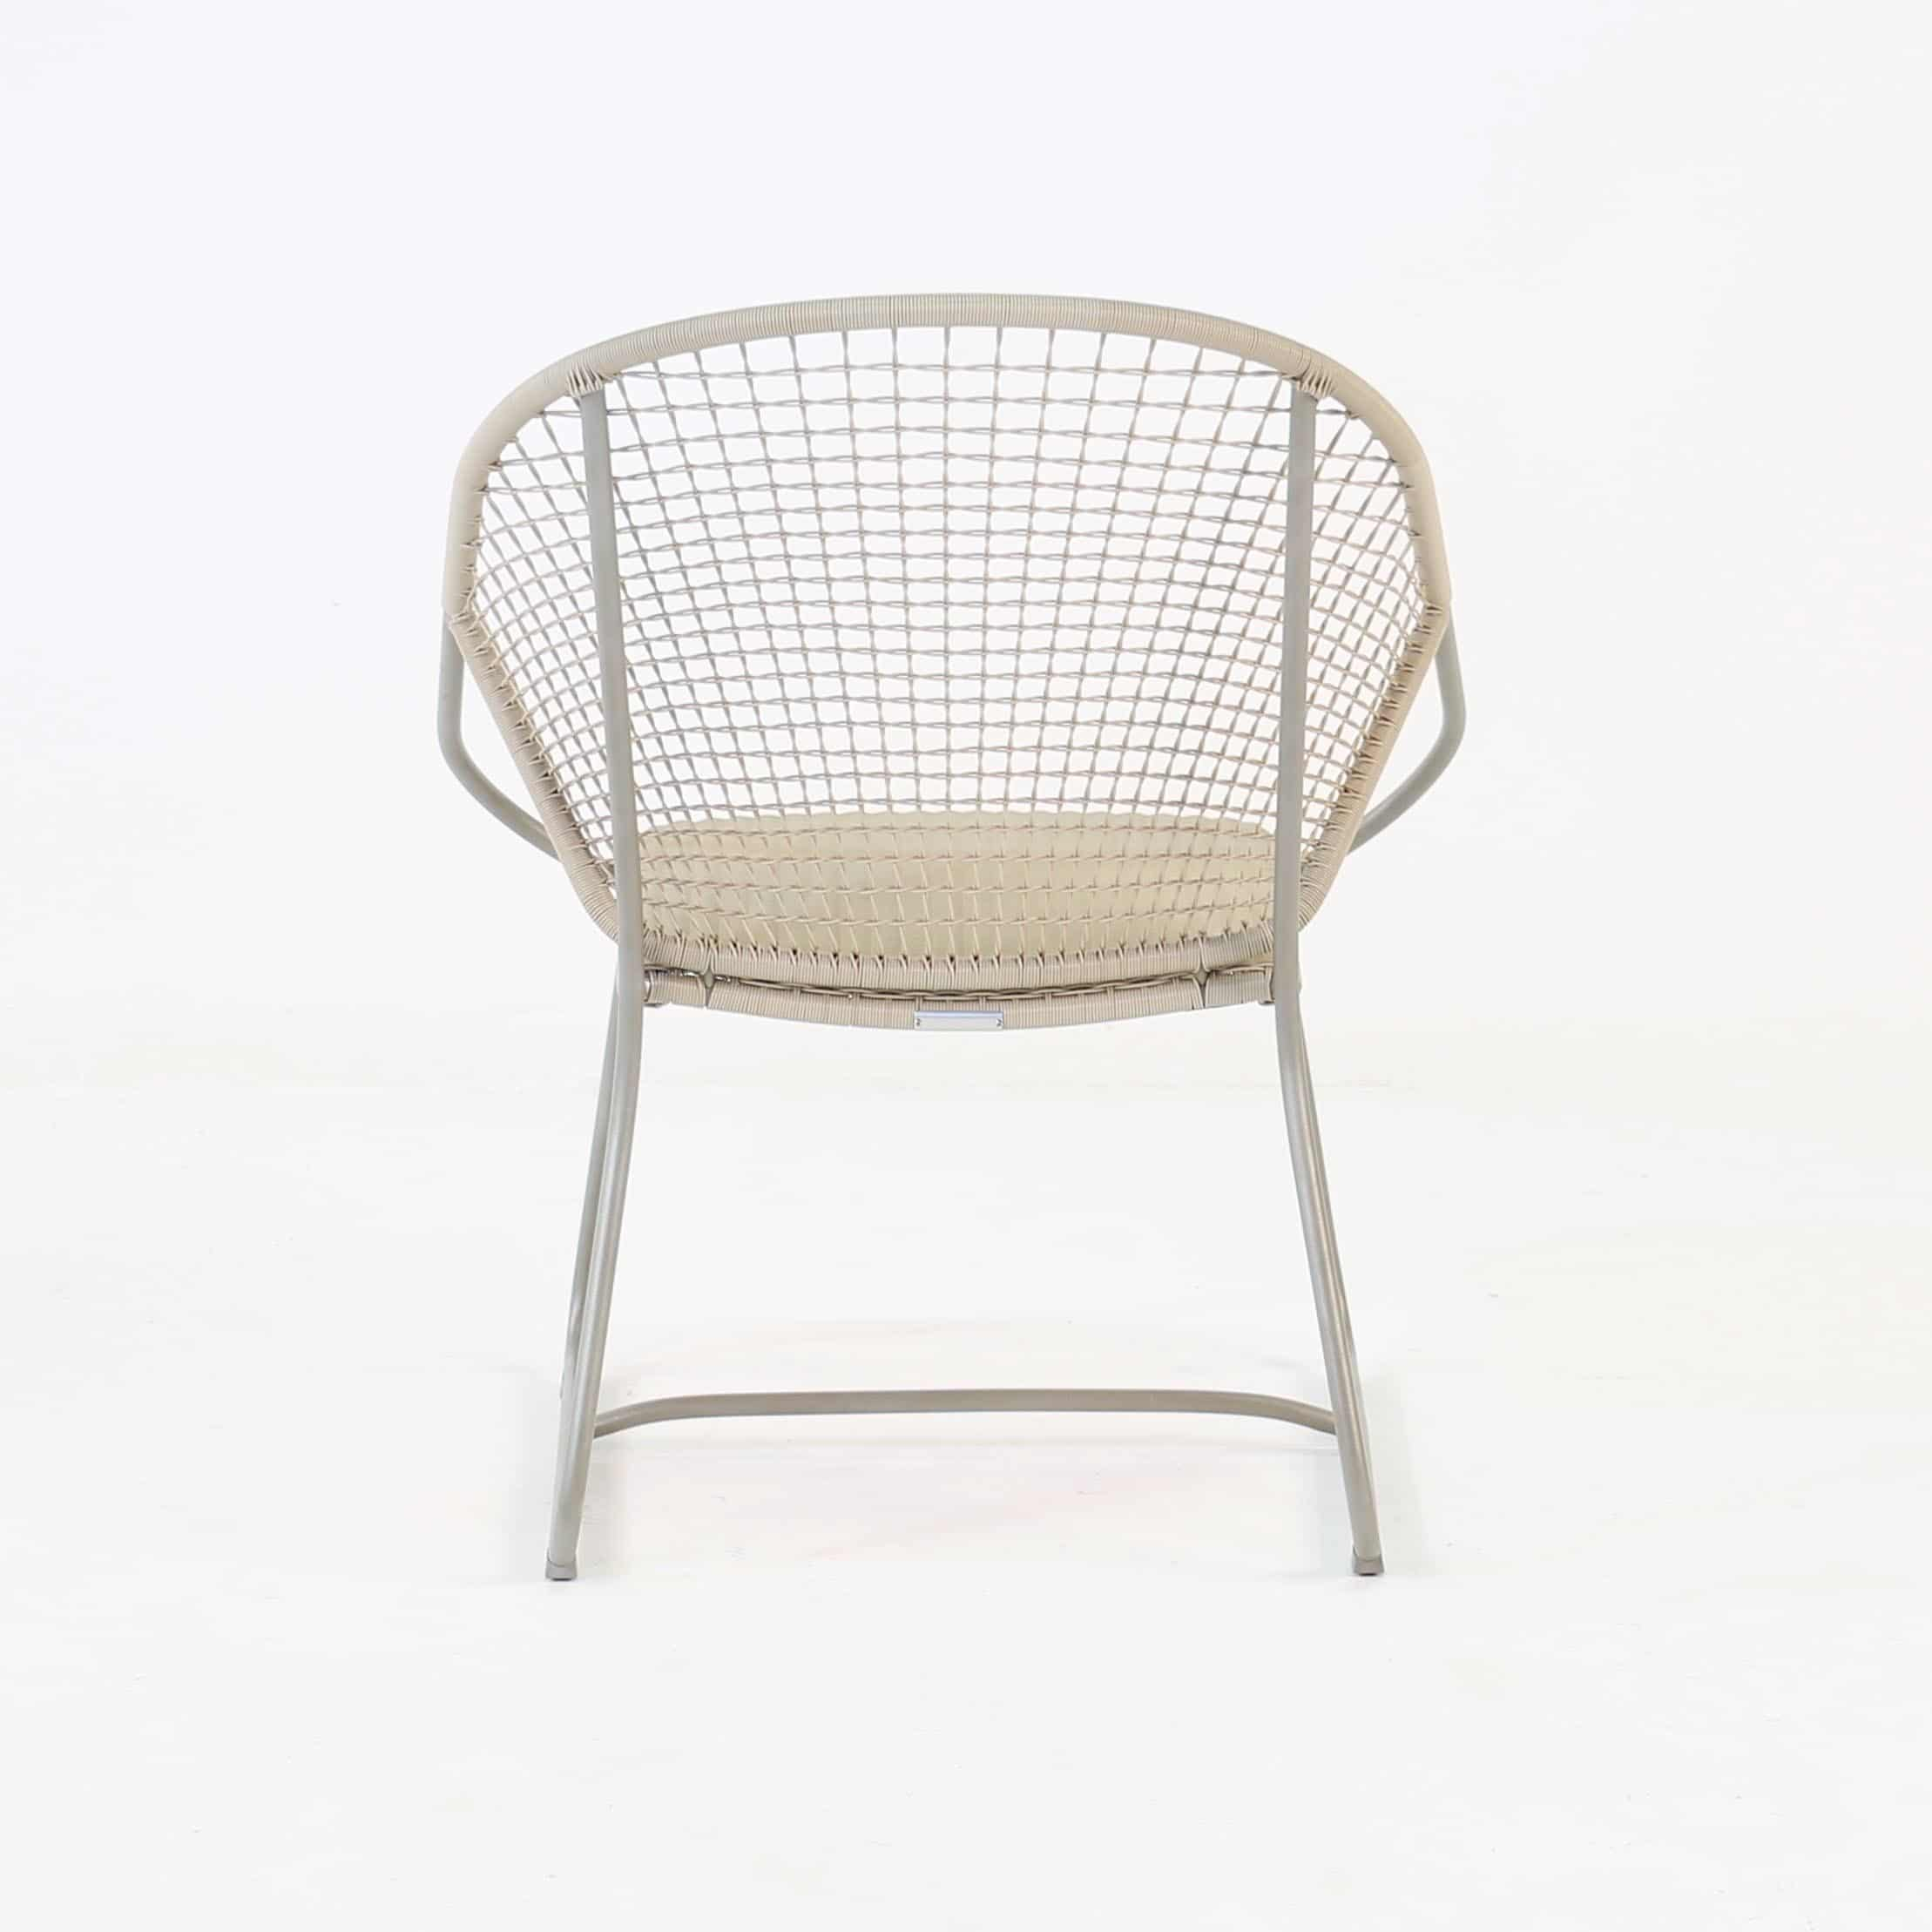 Outdoor Wicker Relaxing Arm Chair front view